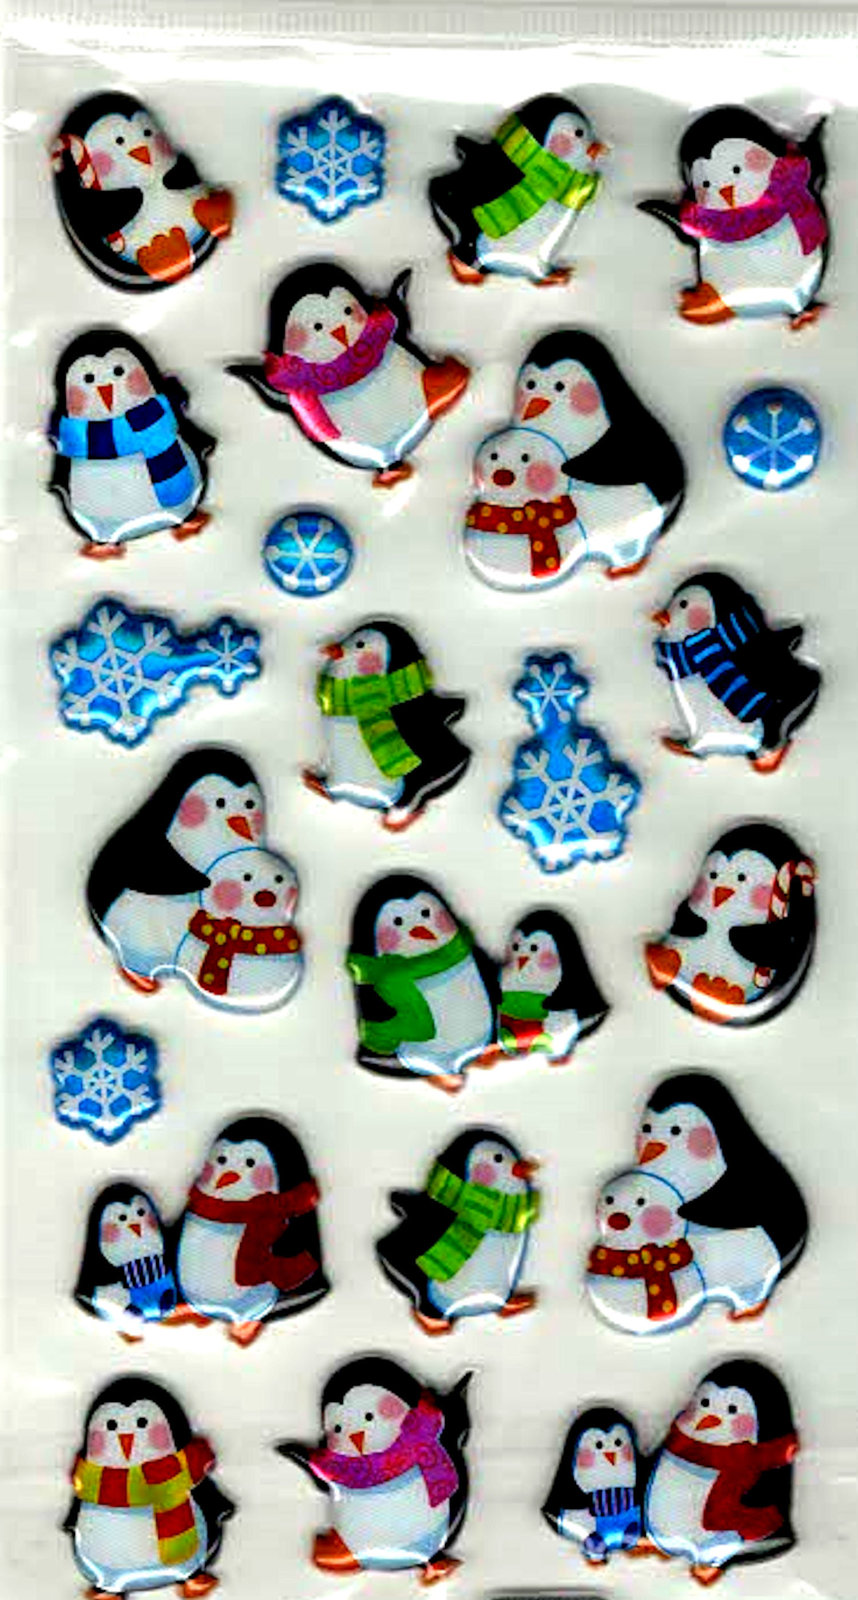 penguins 3d puffy design sheet of peel off stickers  ideal cards, papercraft,